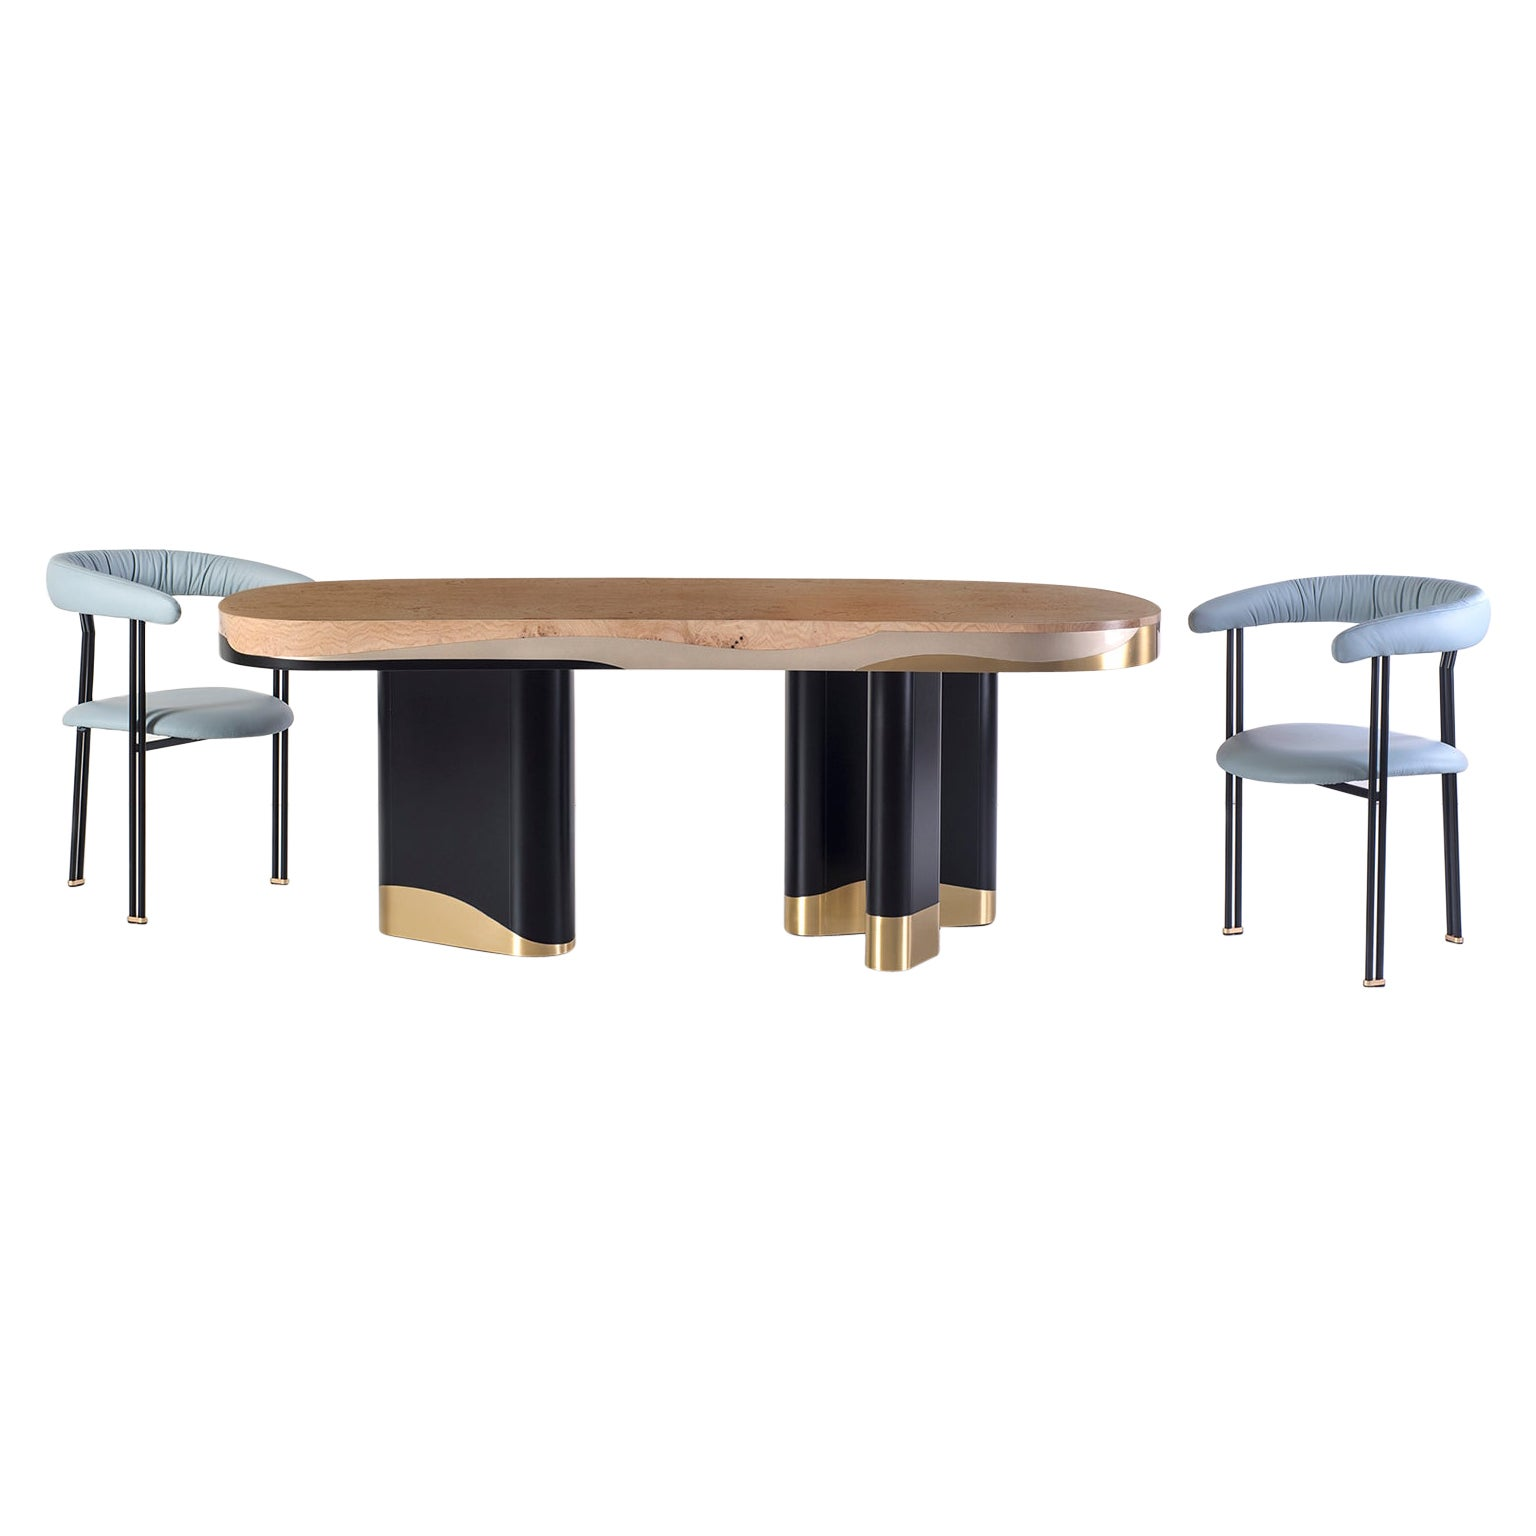 Sistelo 6-Seat Dining Table Oak Root Black Champagne Lacquer Brushed Brass